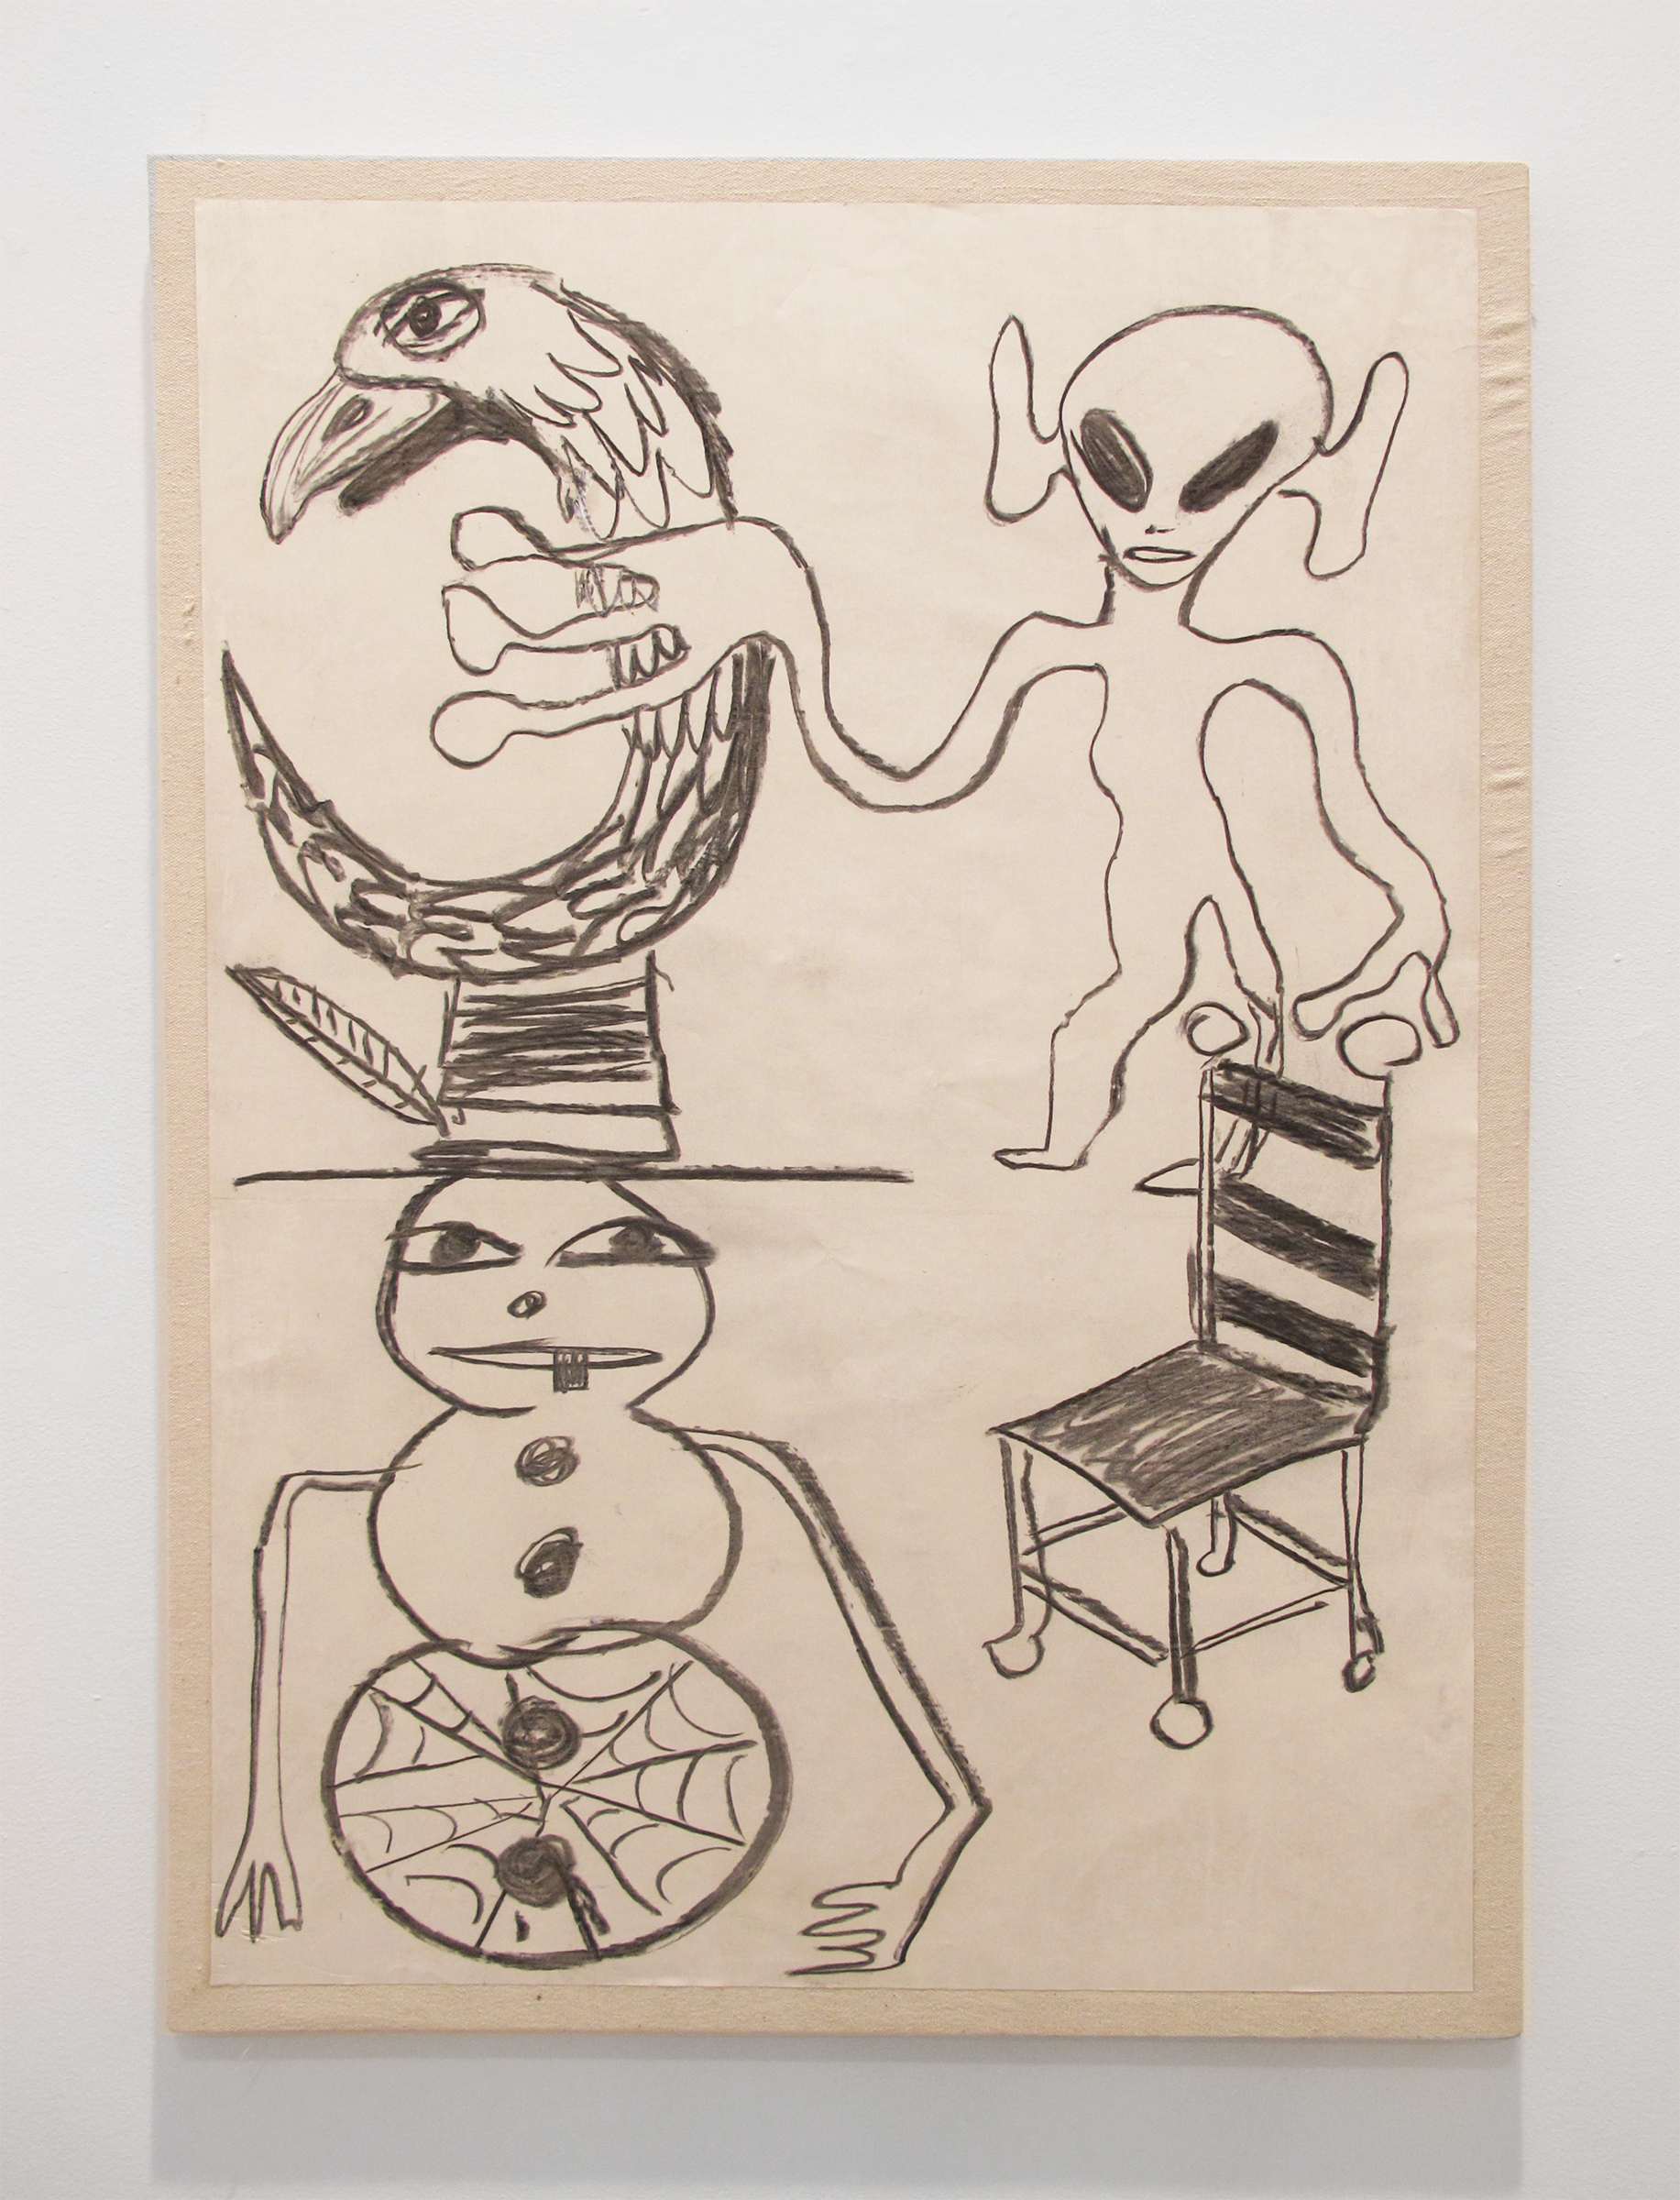 Bill Saylor, Think 2090 , 2014, charcoal, paper on canvas, 40 x 27 in